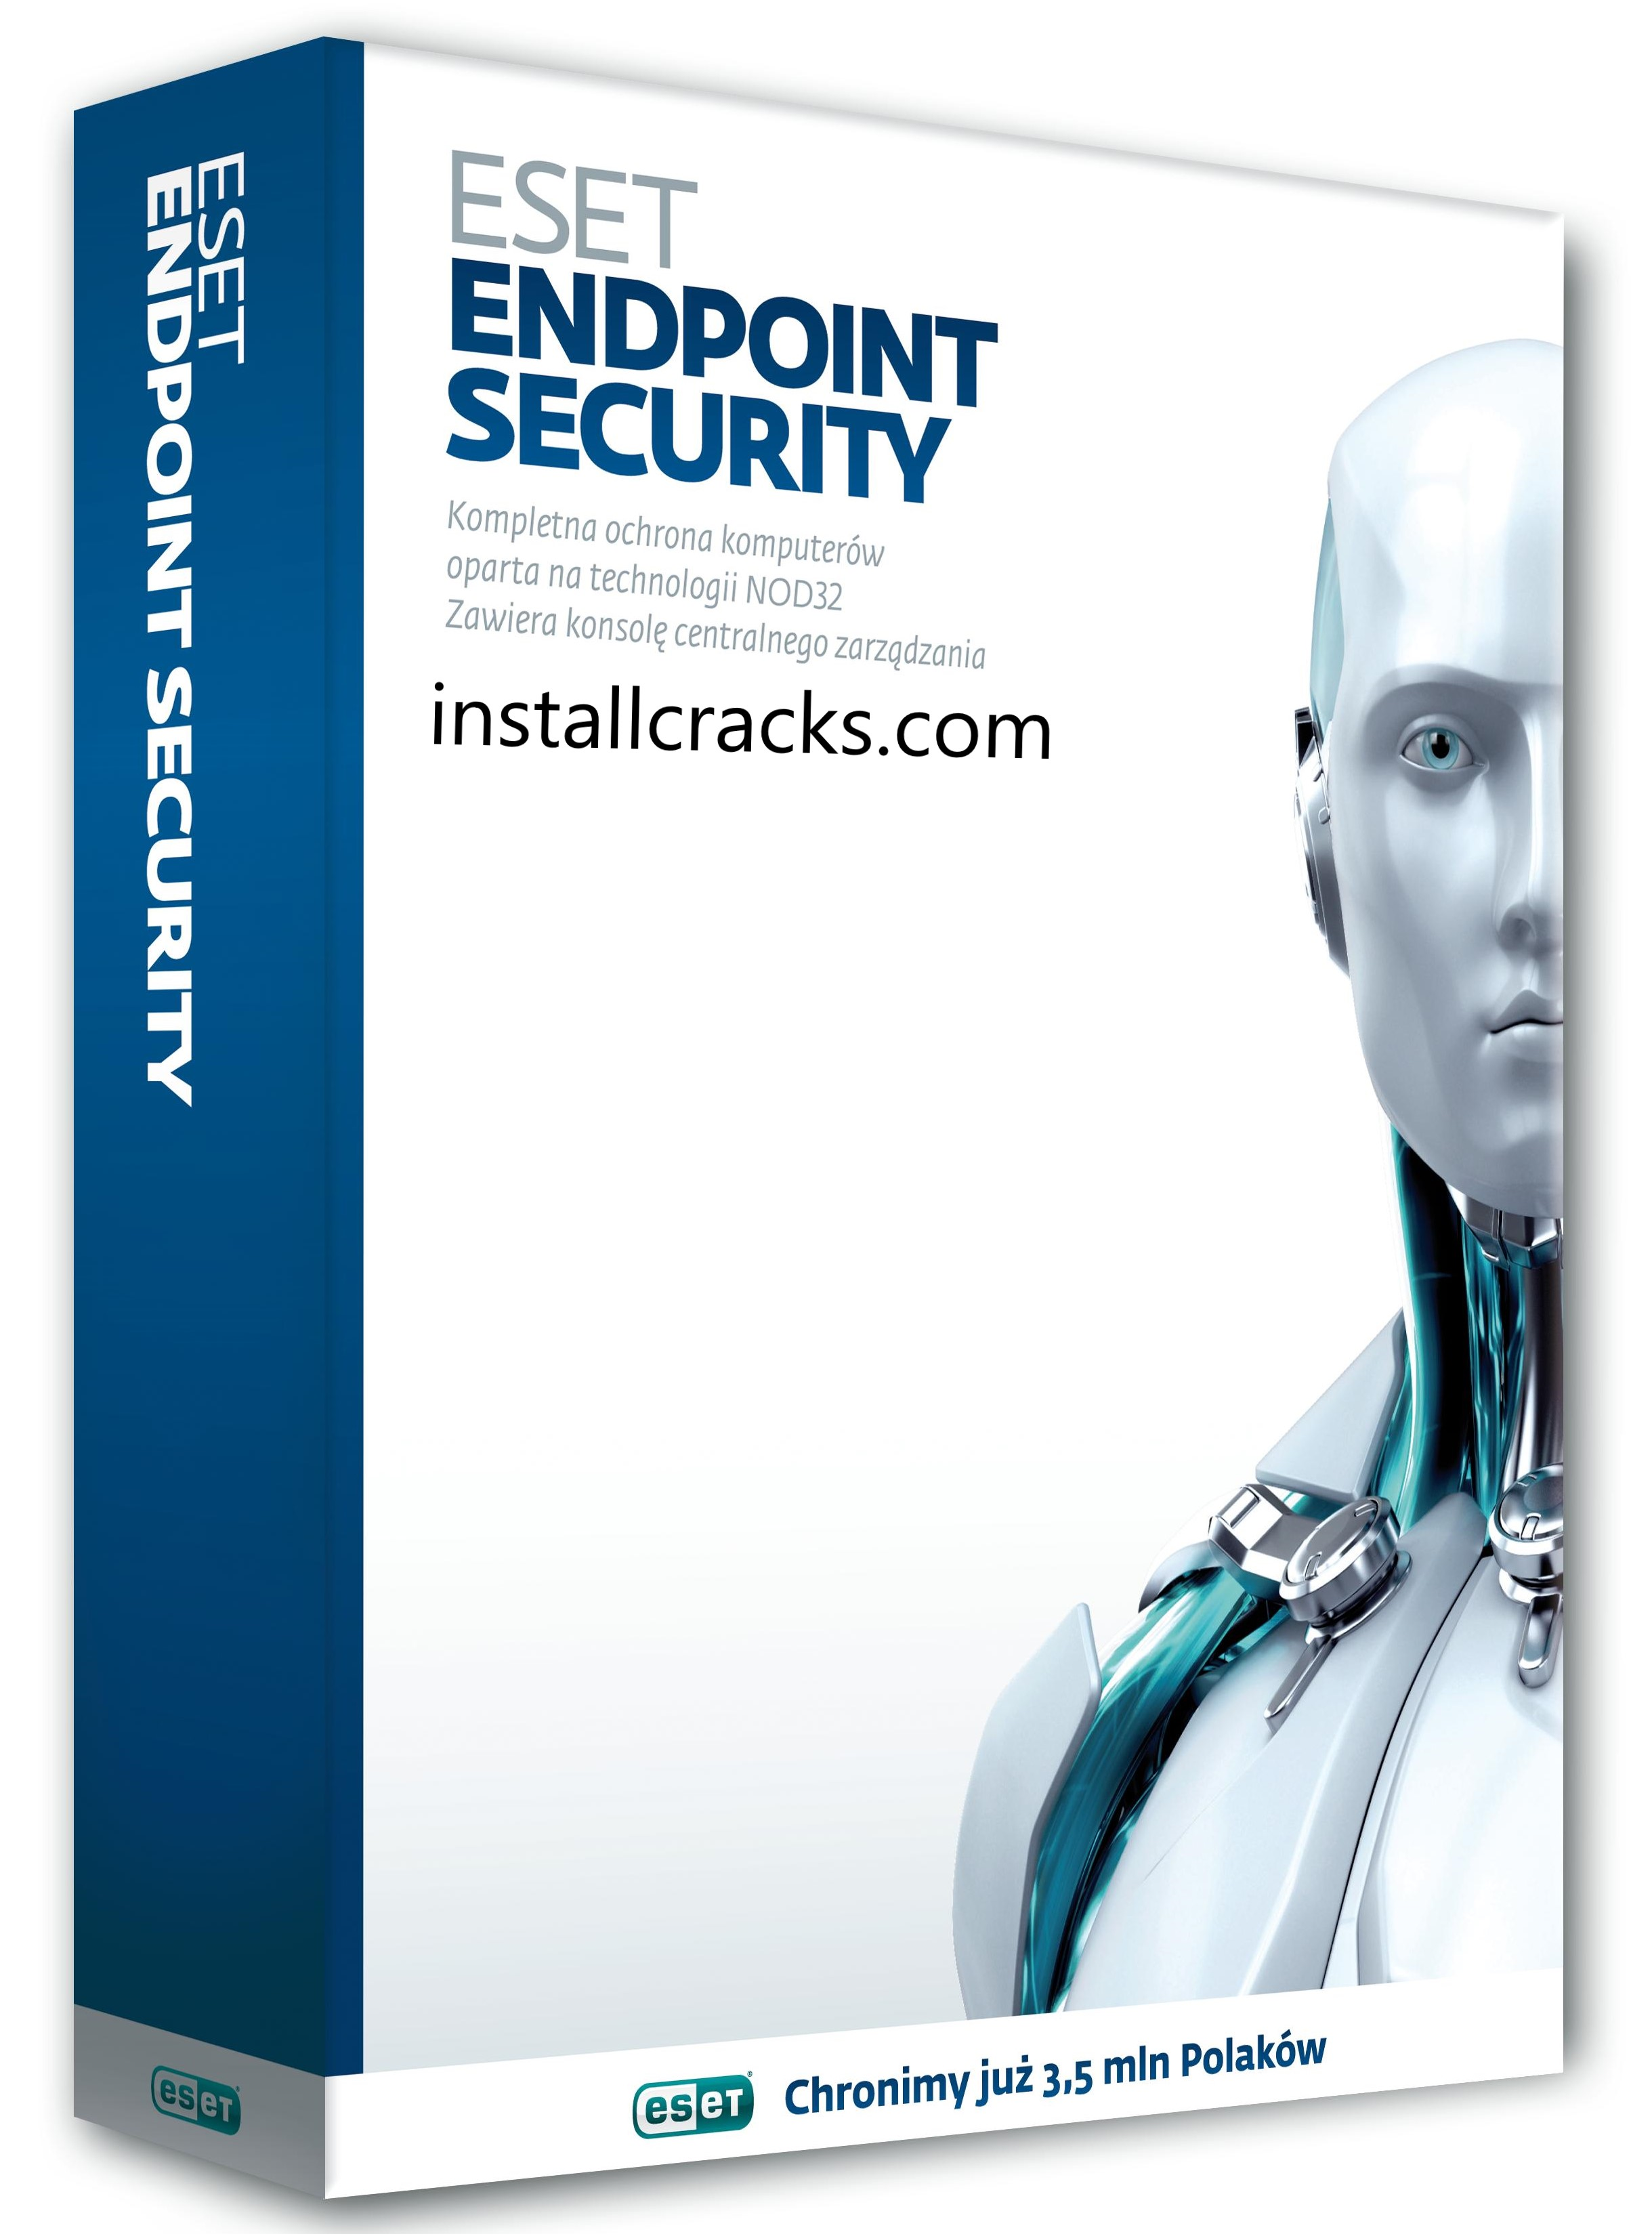 ESET Endpoint Security 7.0.2073.1 Crack Download Here!